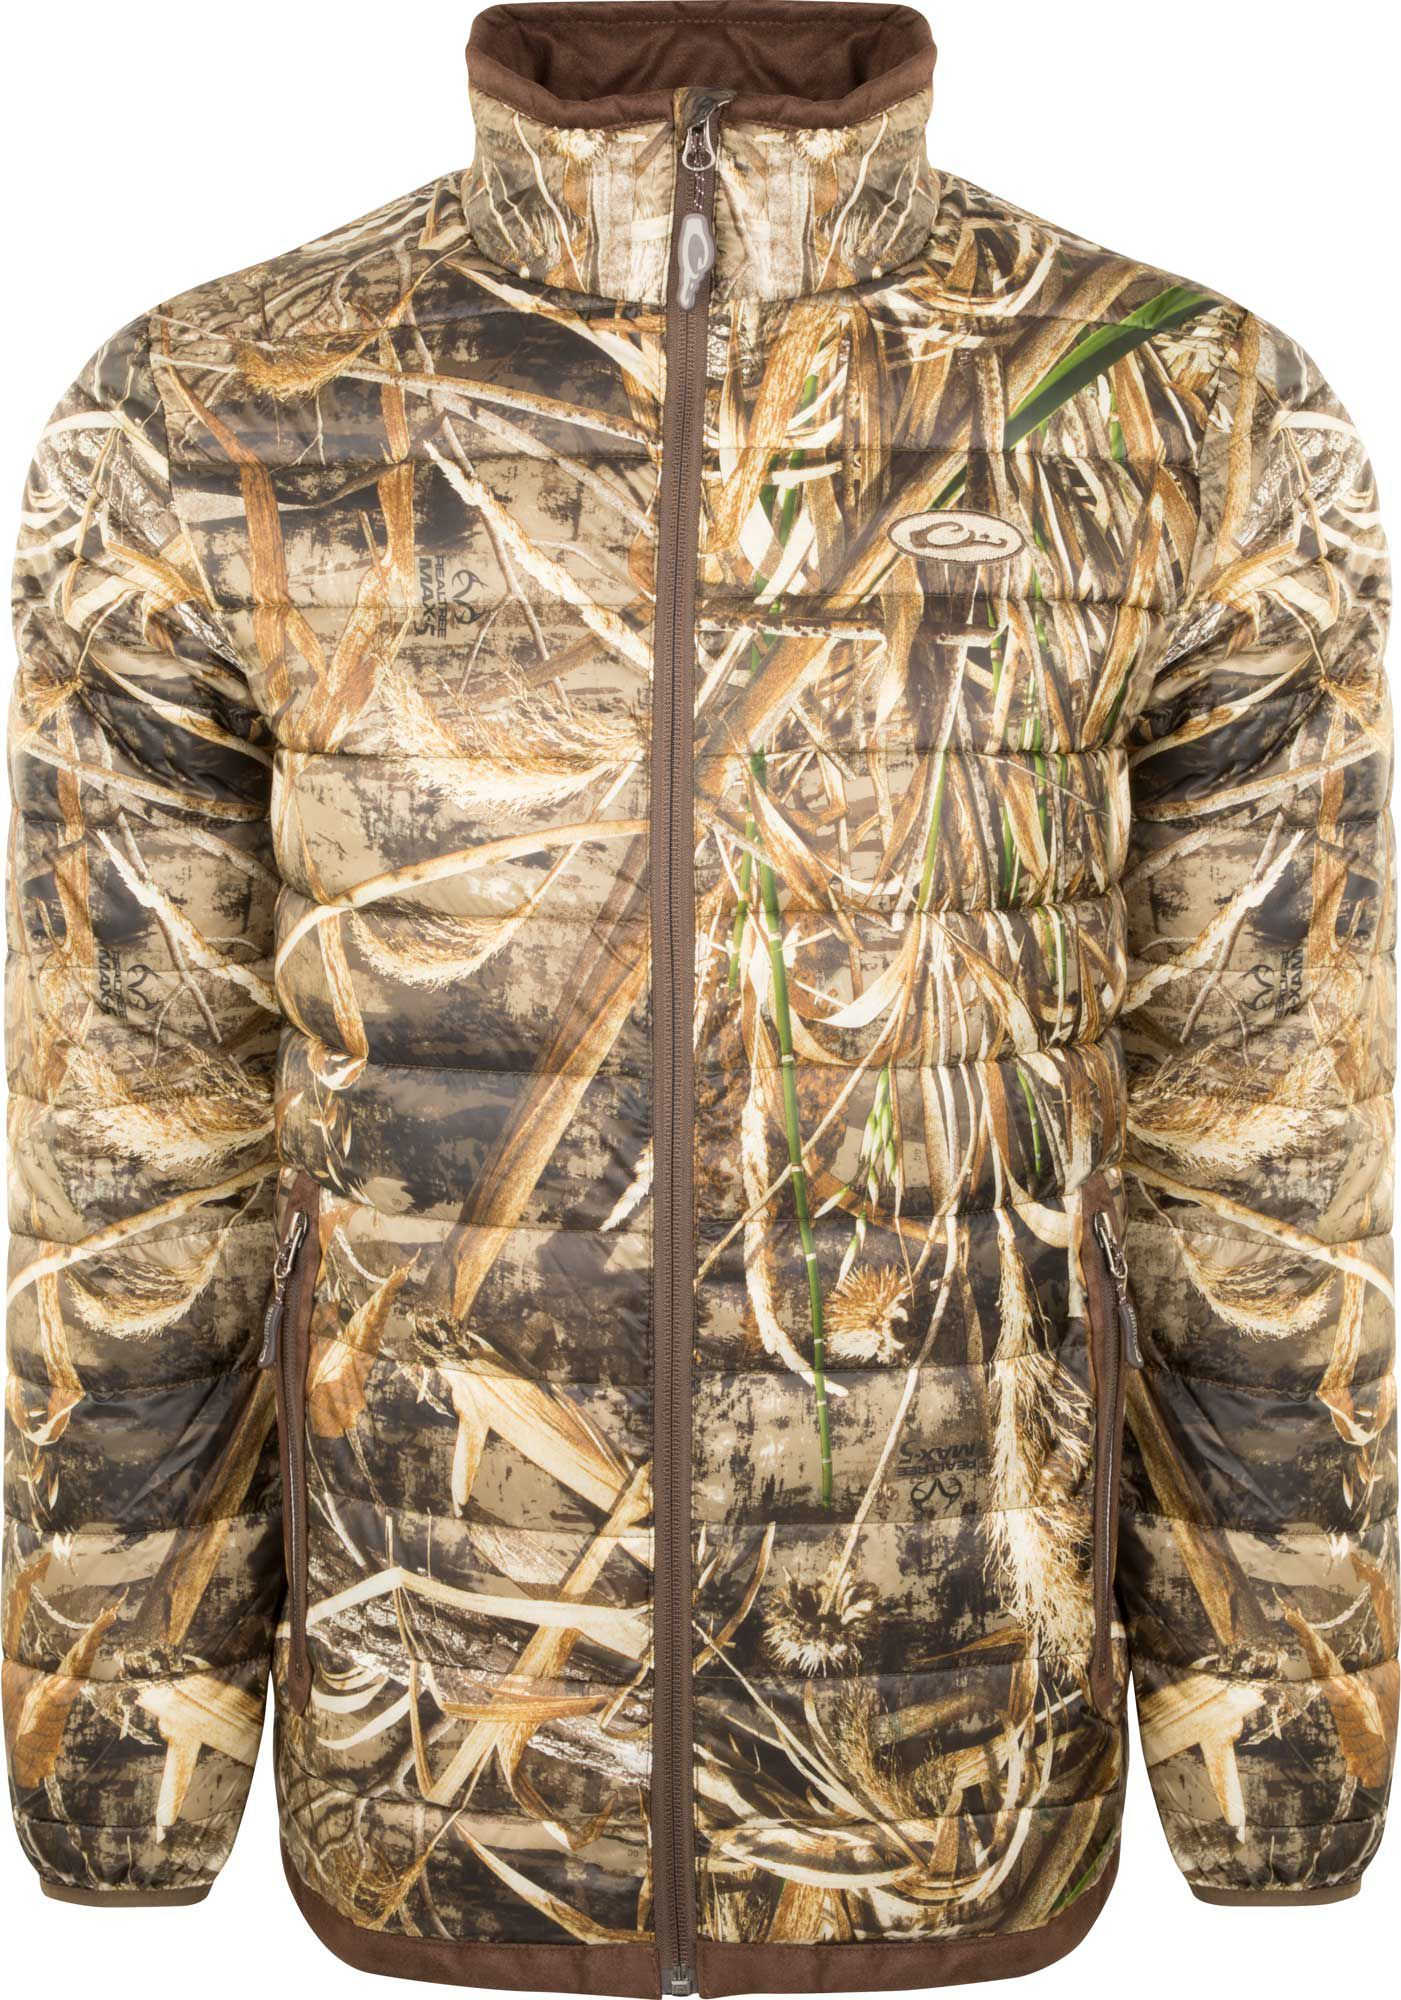 Drake Waterfowl Men's Camo Double Down Layering Full Zip Hunting Jacket, Size: Small, Green